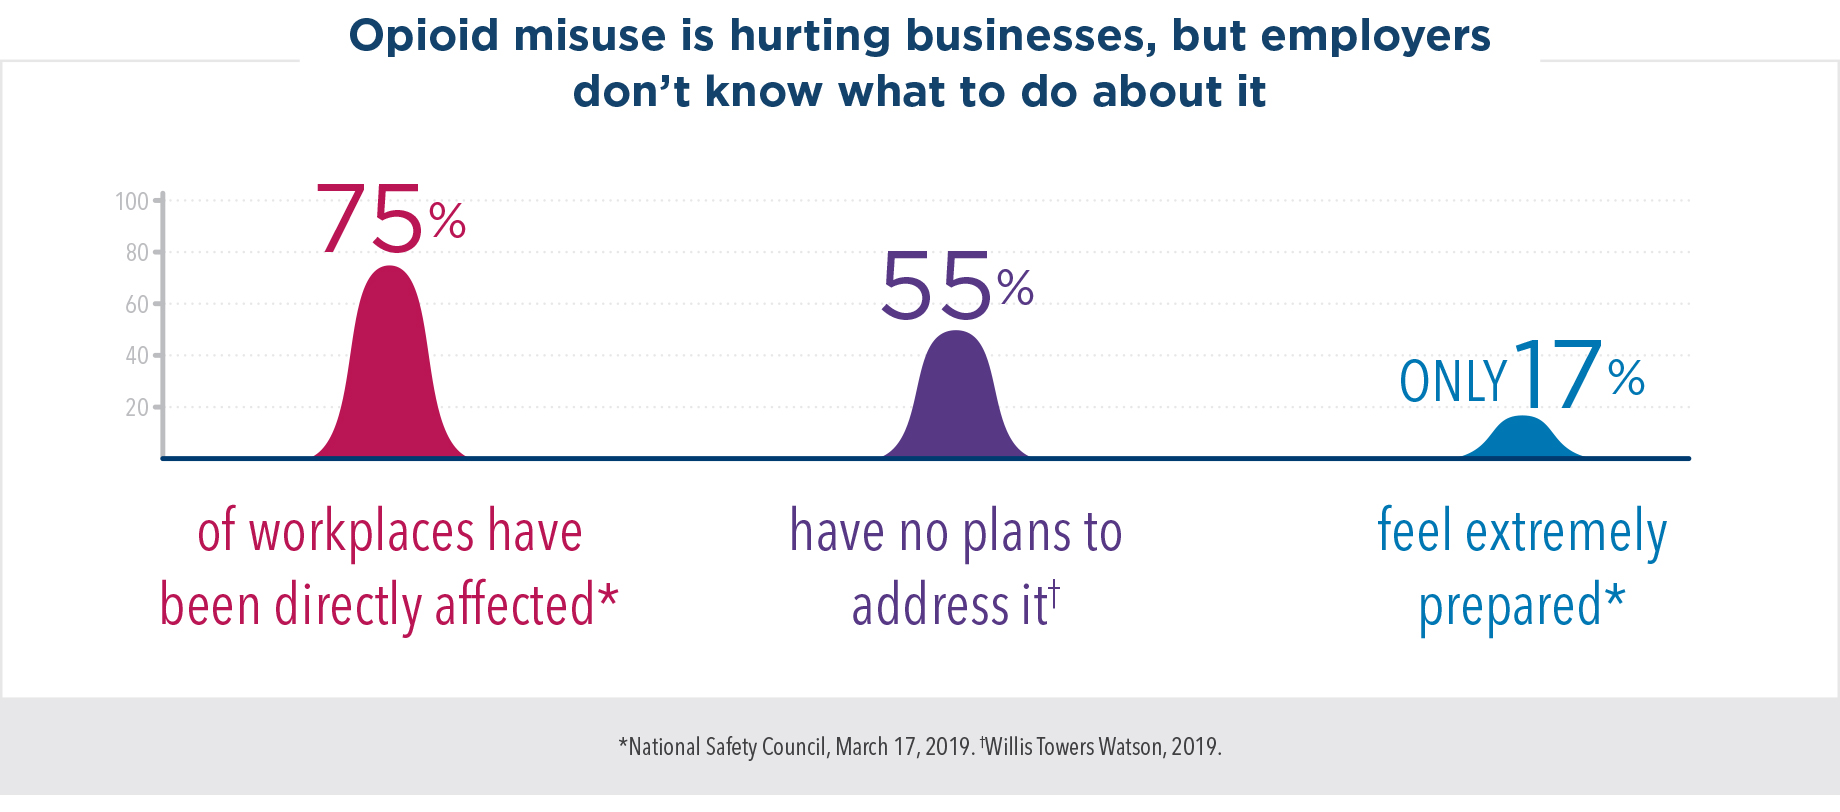 Opioid misuse is hurting businesses, but employers don't know what to do about it. 75% of workplaces have been directly affected, but 55% have no plans to address it. Only 17% feel extremely prepared.